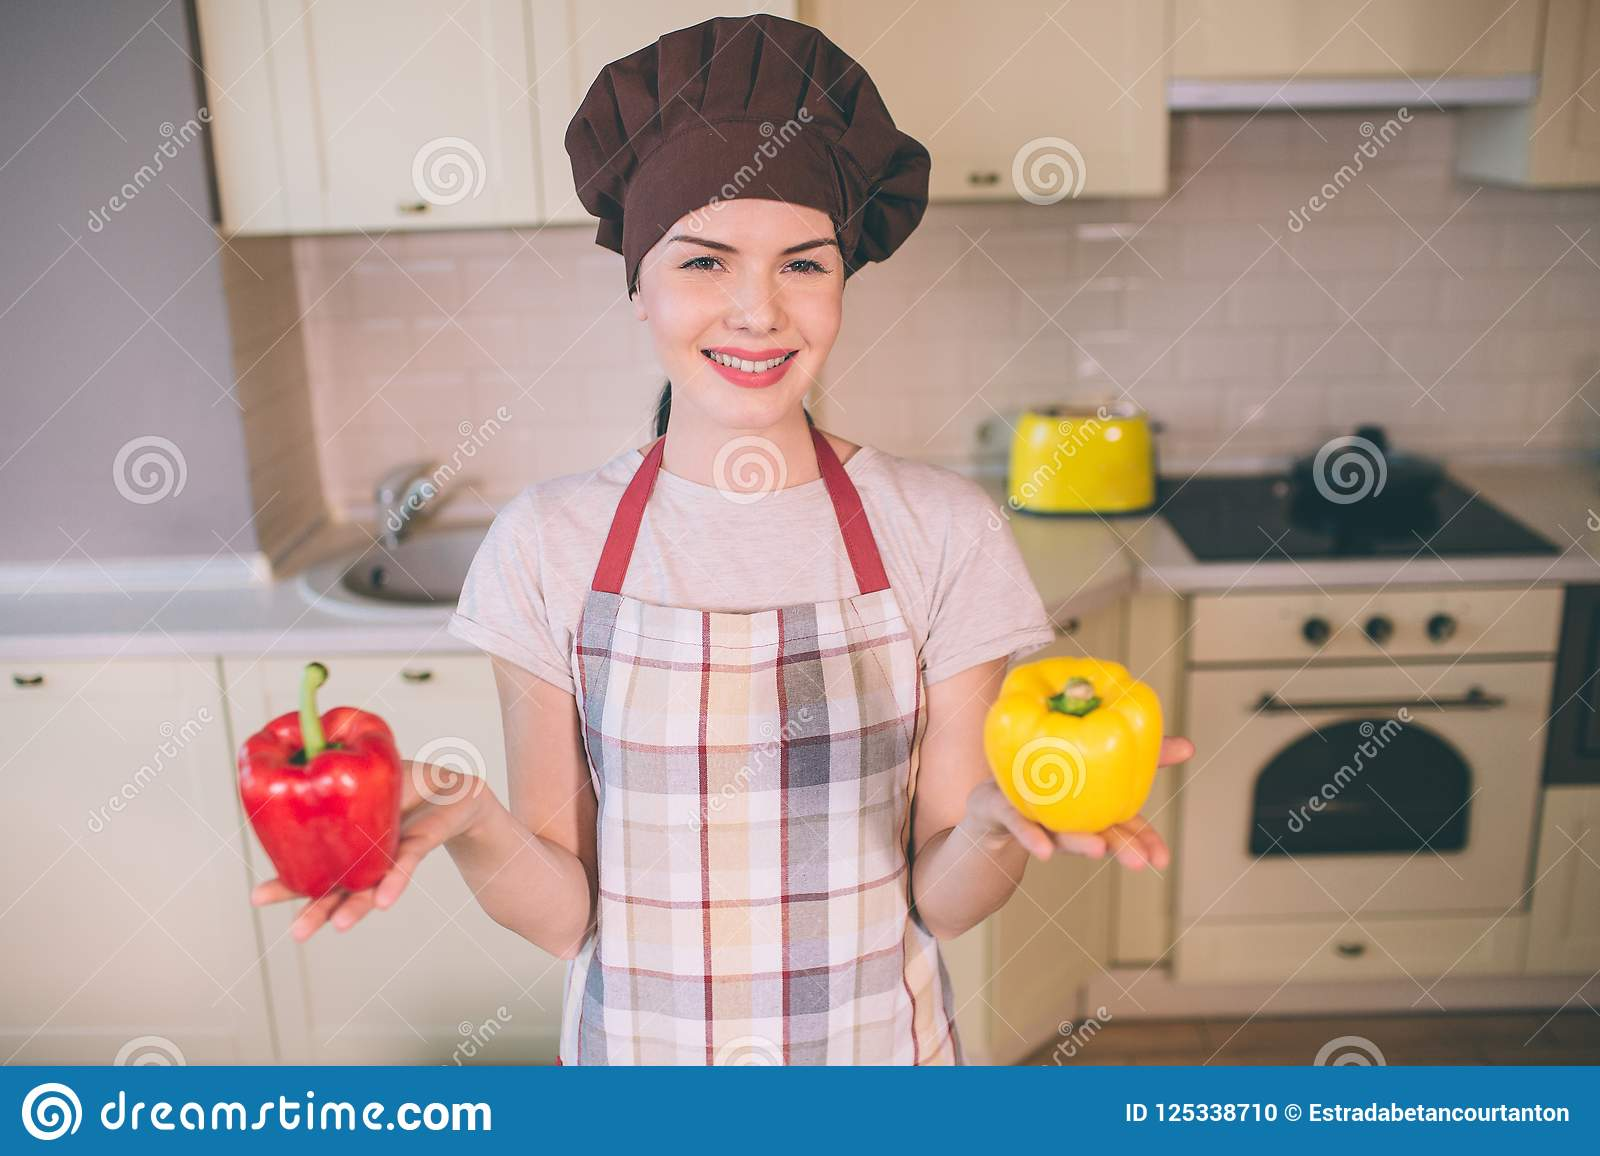 Nice And Beautiful Woman Stands In Kitchen She Holds Red And Yellow Peppers Girl